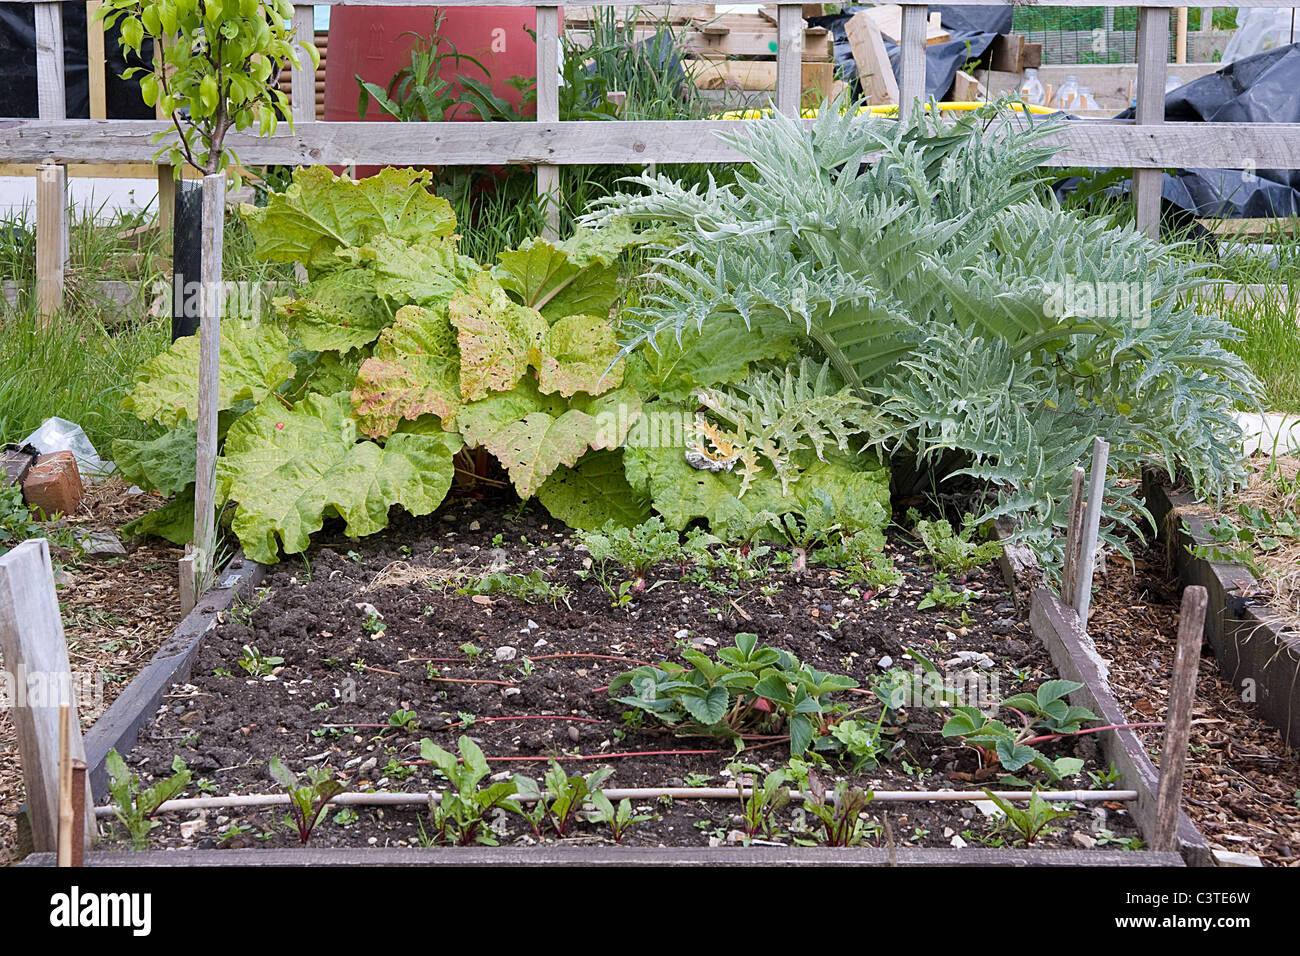 Working allotment bed with rhubarb and artichoke - Stock Image